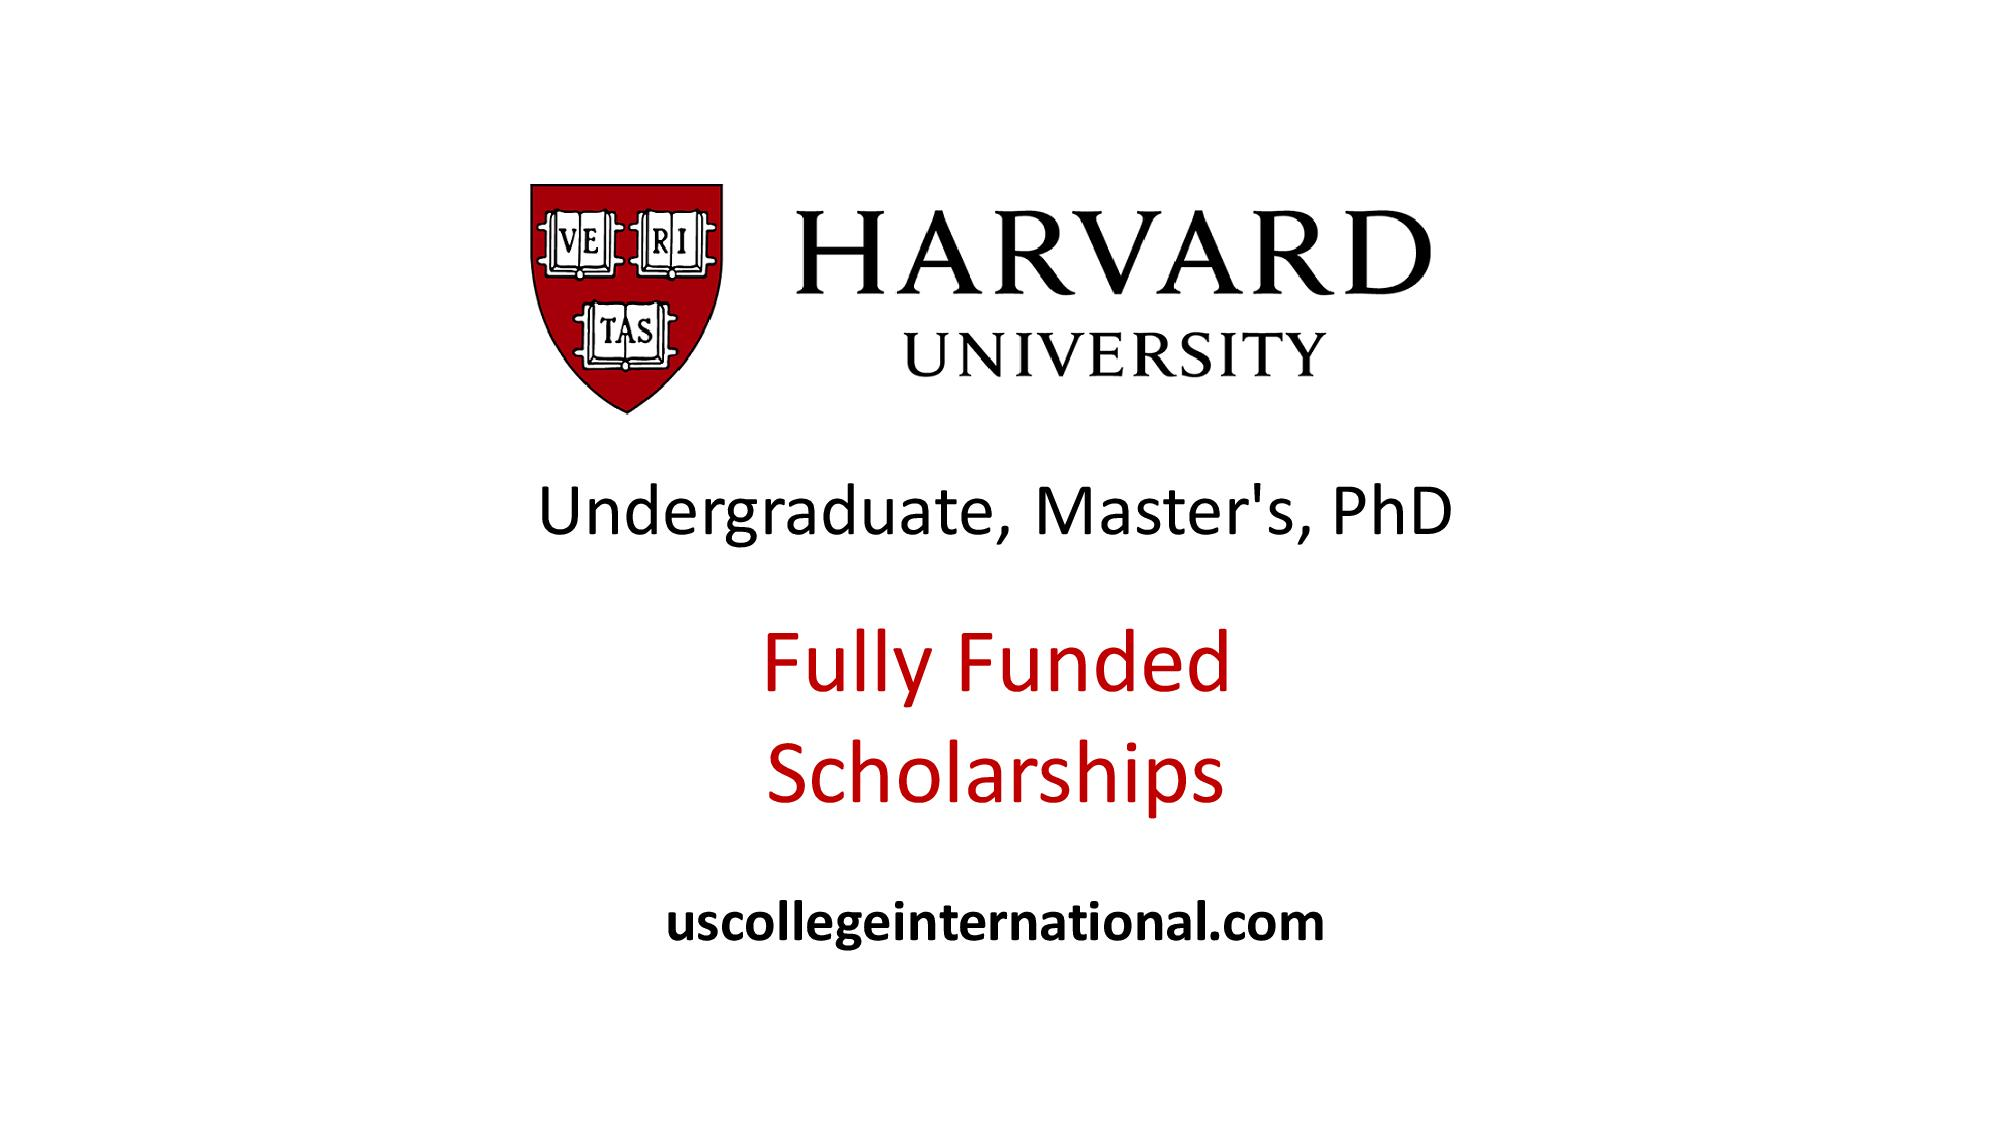 Harvard University Scholarships 2019 (Fully Funded) - Scholarships